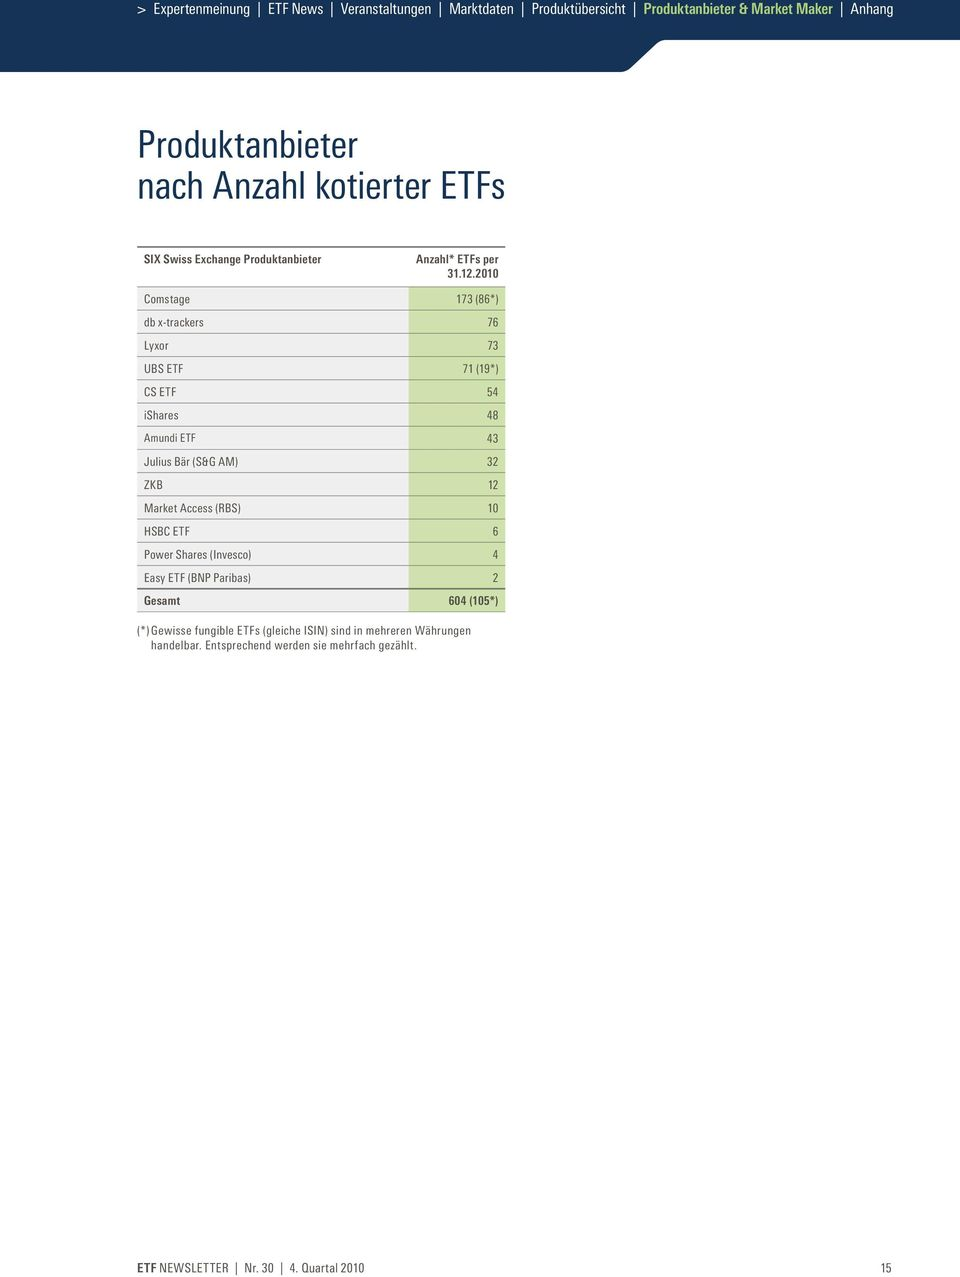 32 ZKB 12 Market Access (RBS) 10 HSBC ETF 6 Power Shares (Invesco) 4 Easy ETF (BNP Paribas) 2 Gesamt 604 (105*) (*) Gewisse